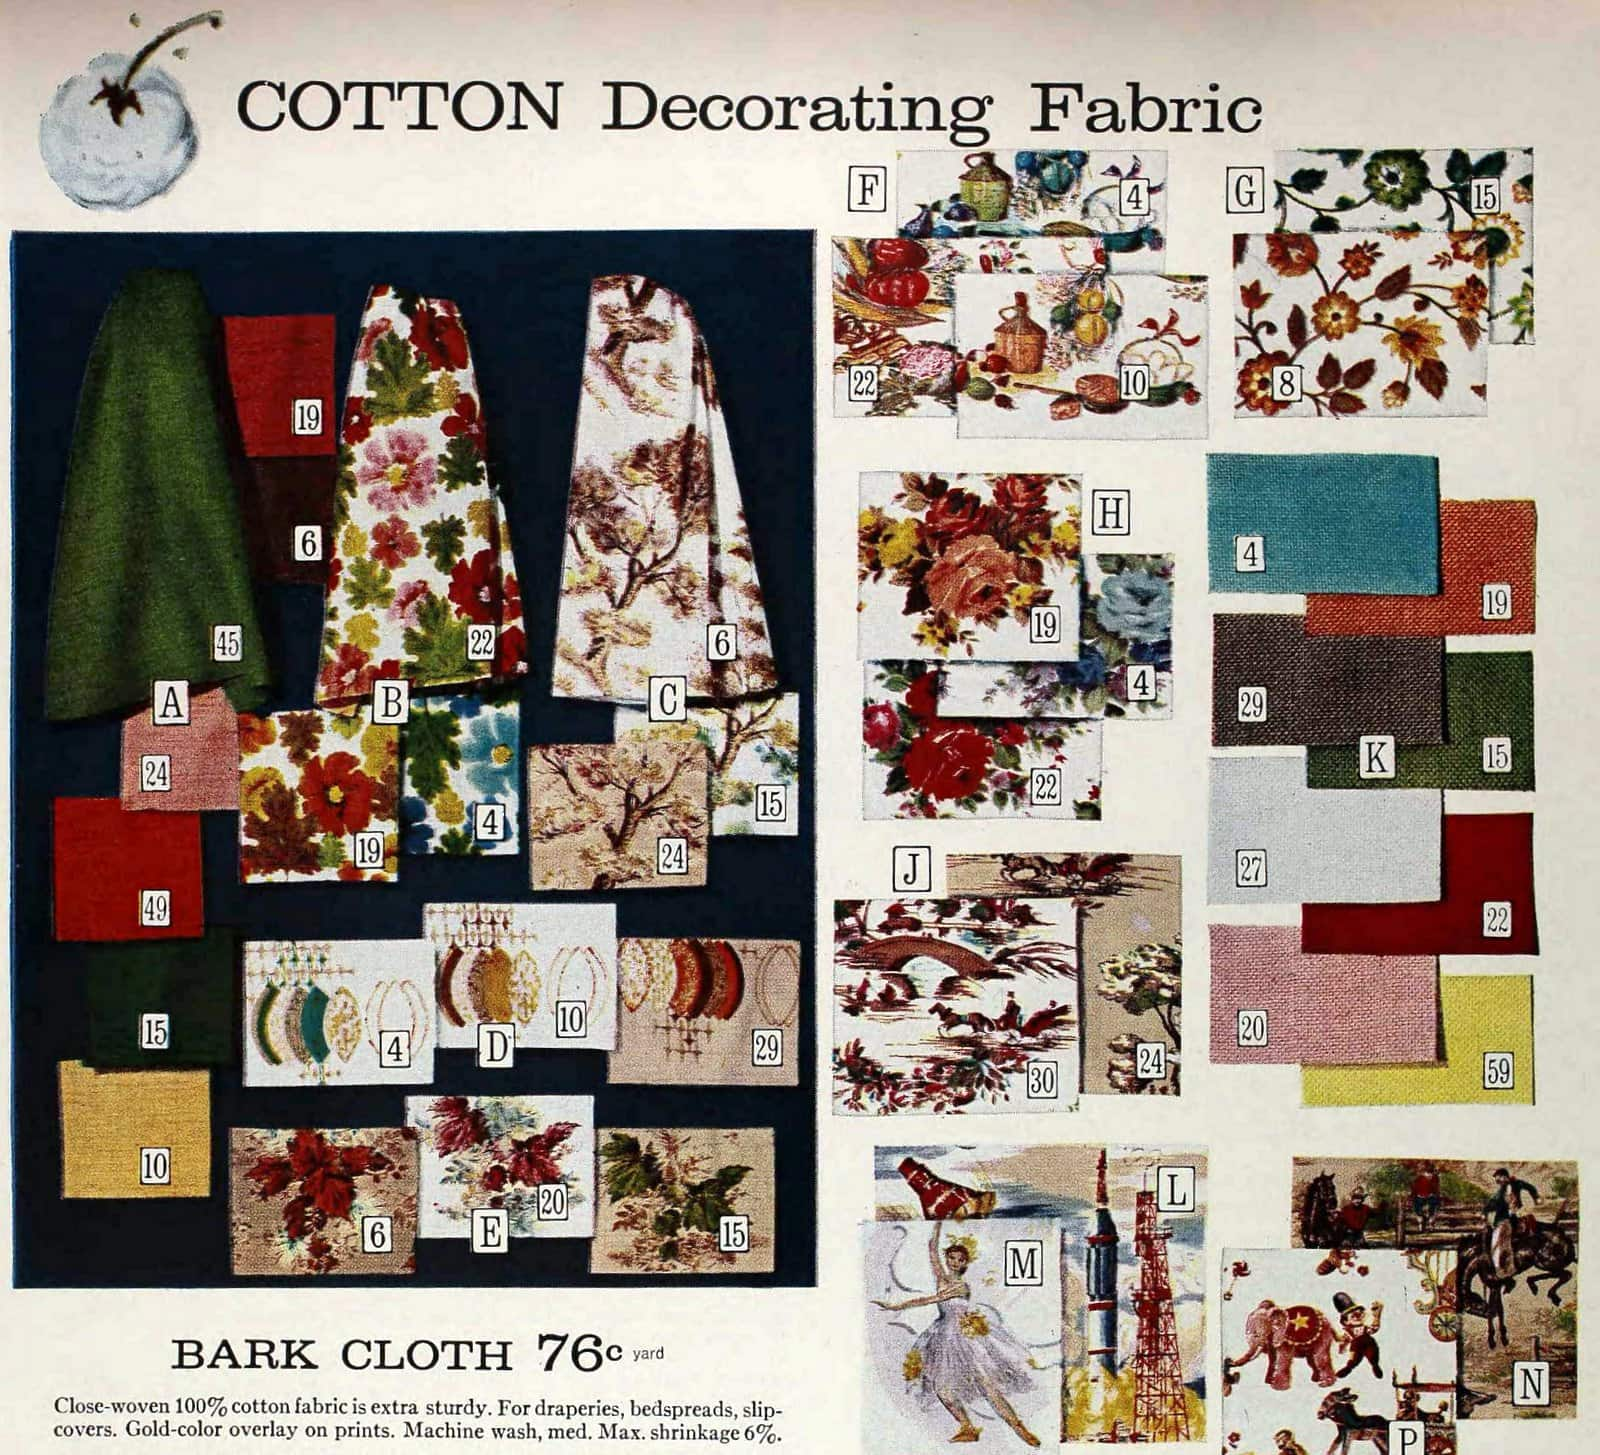 Vintage decorating fabric patterns from Sears in 1965 (3)